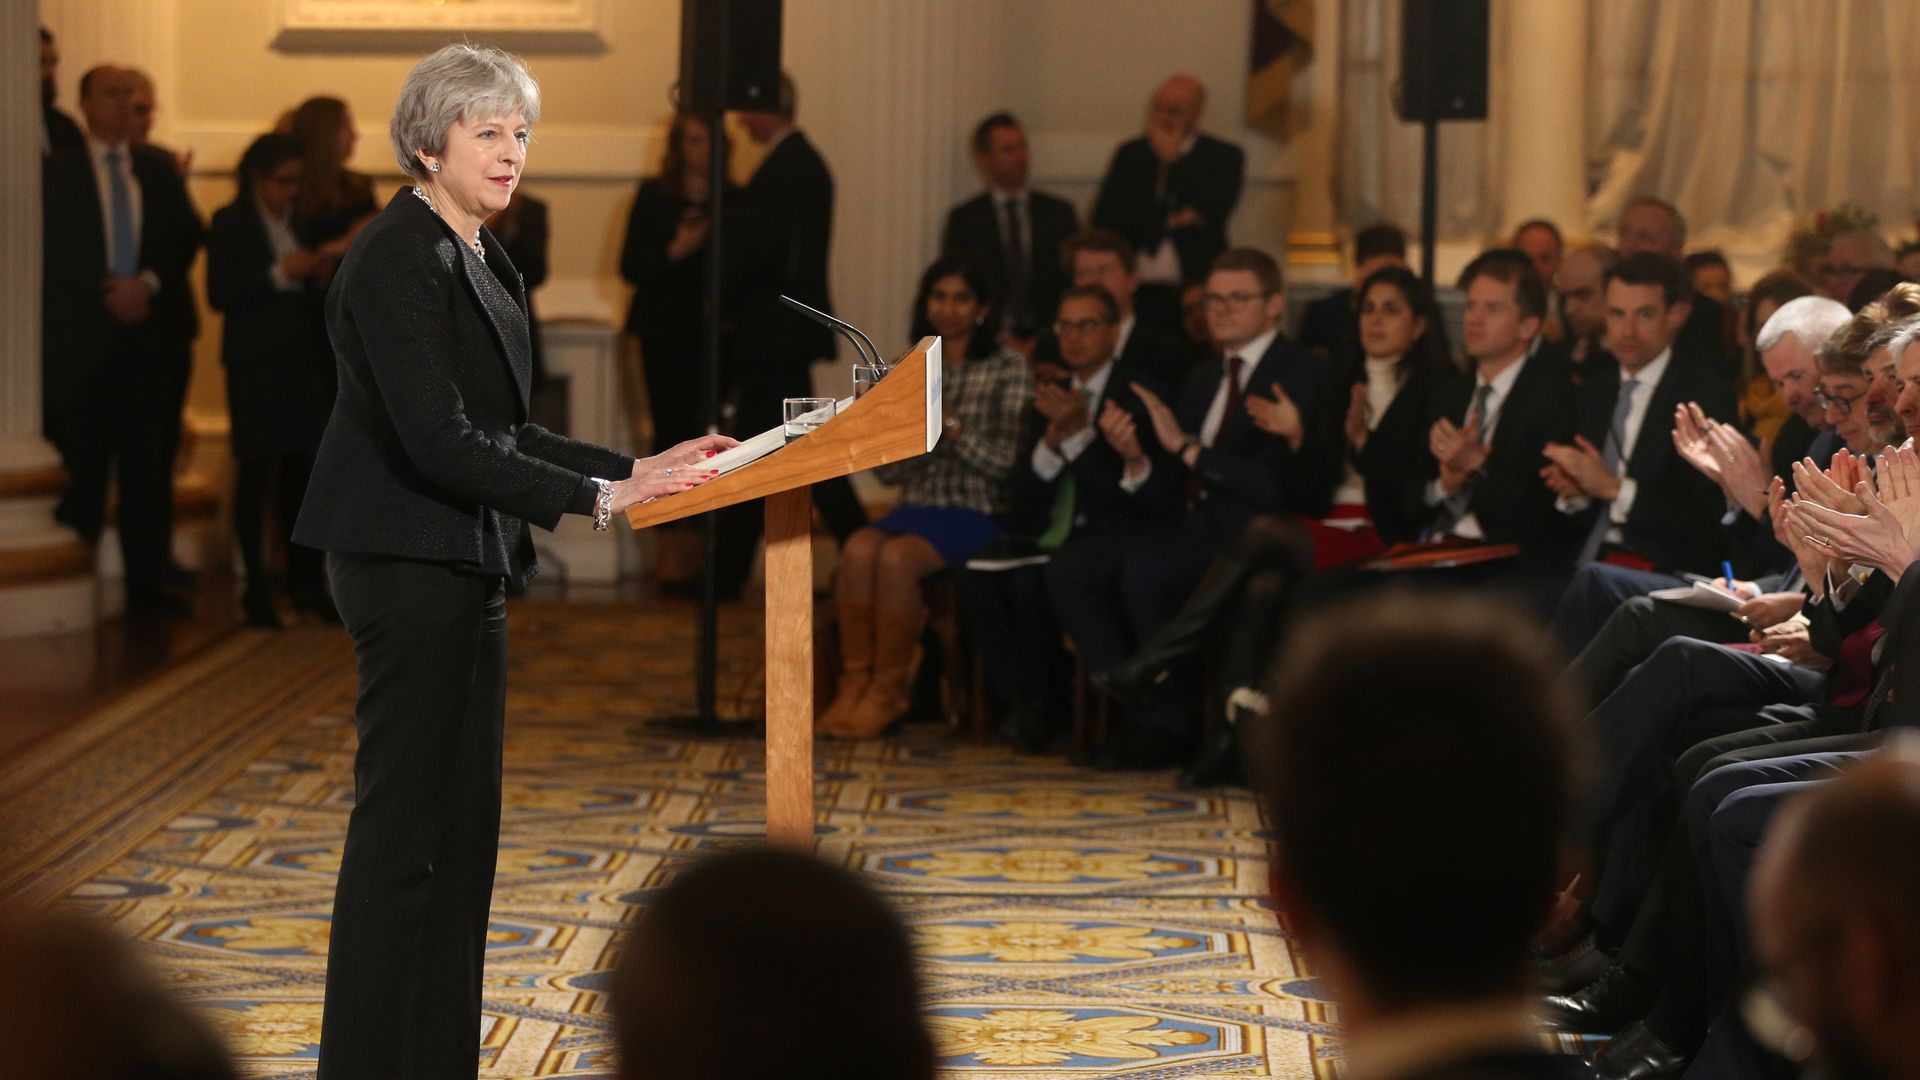 British Prime Minister Theresa May delivers her latest Brexit speech at Mansion House on March 2, 2018, in London, England.